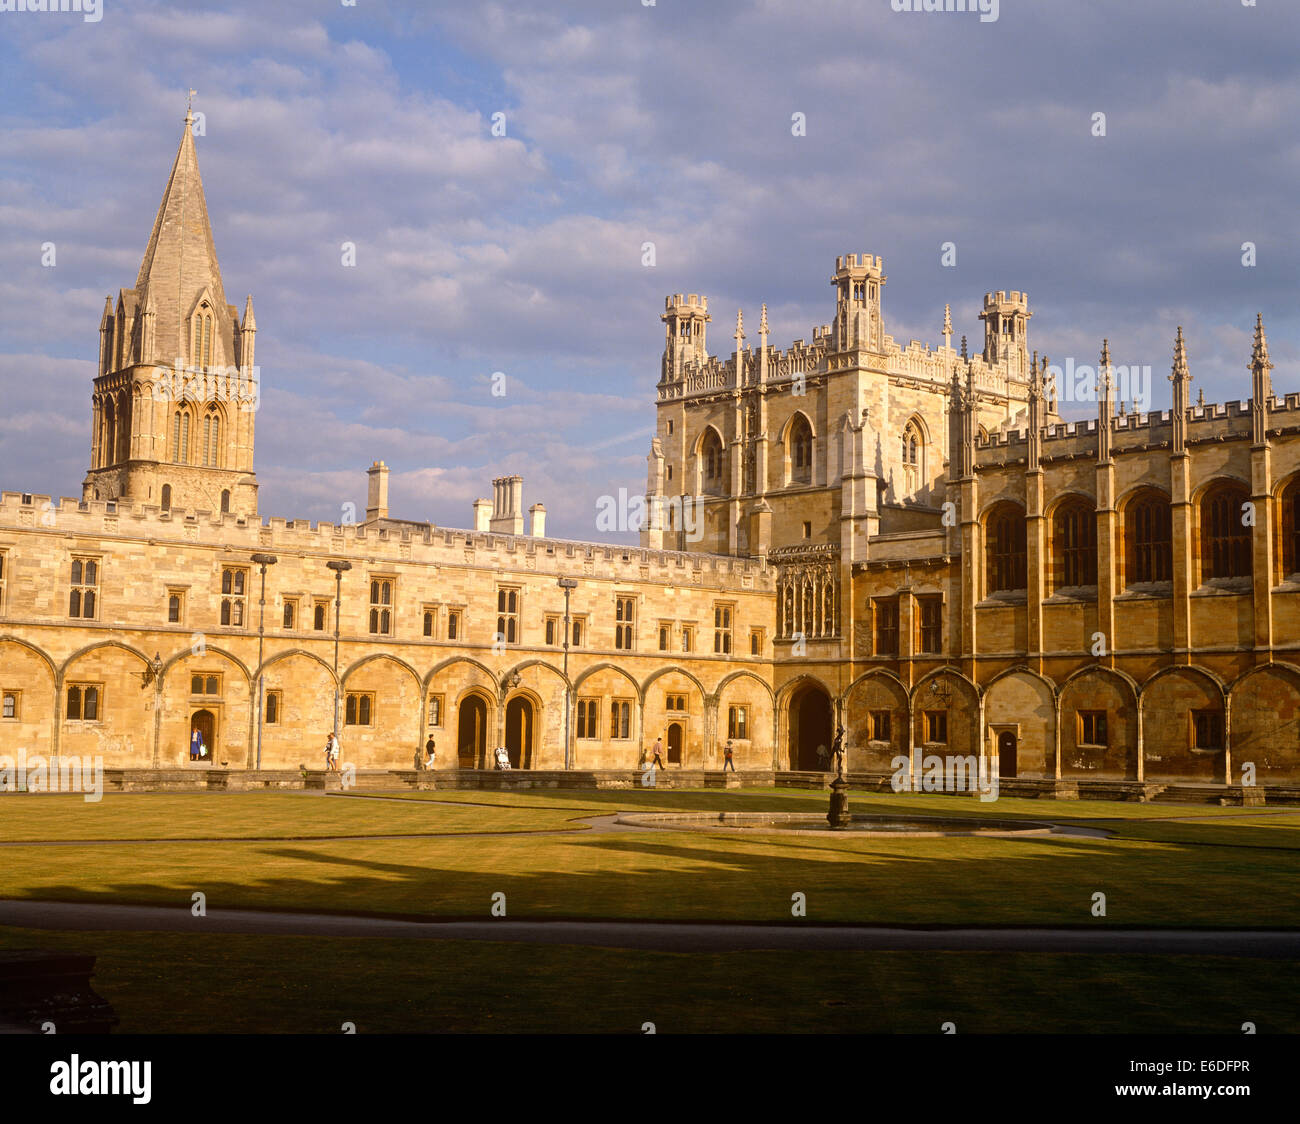 Christchurch College und Kathedrale Oxford UK Stockbild